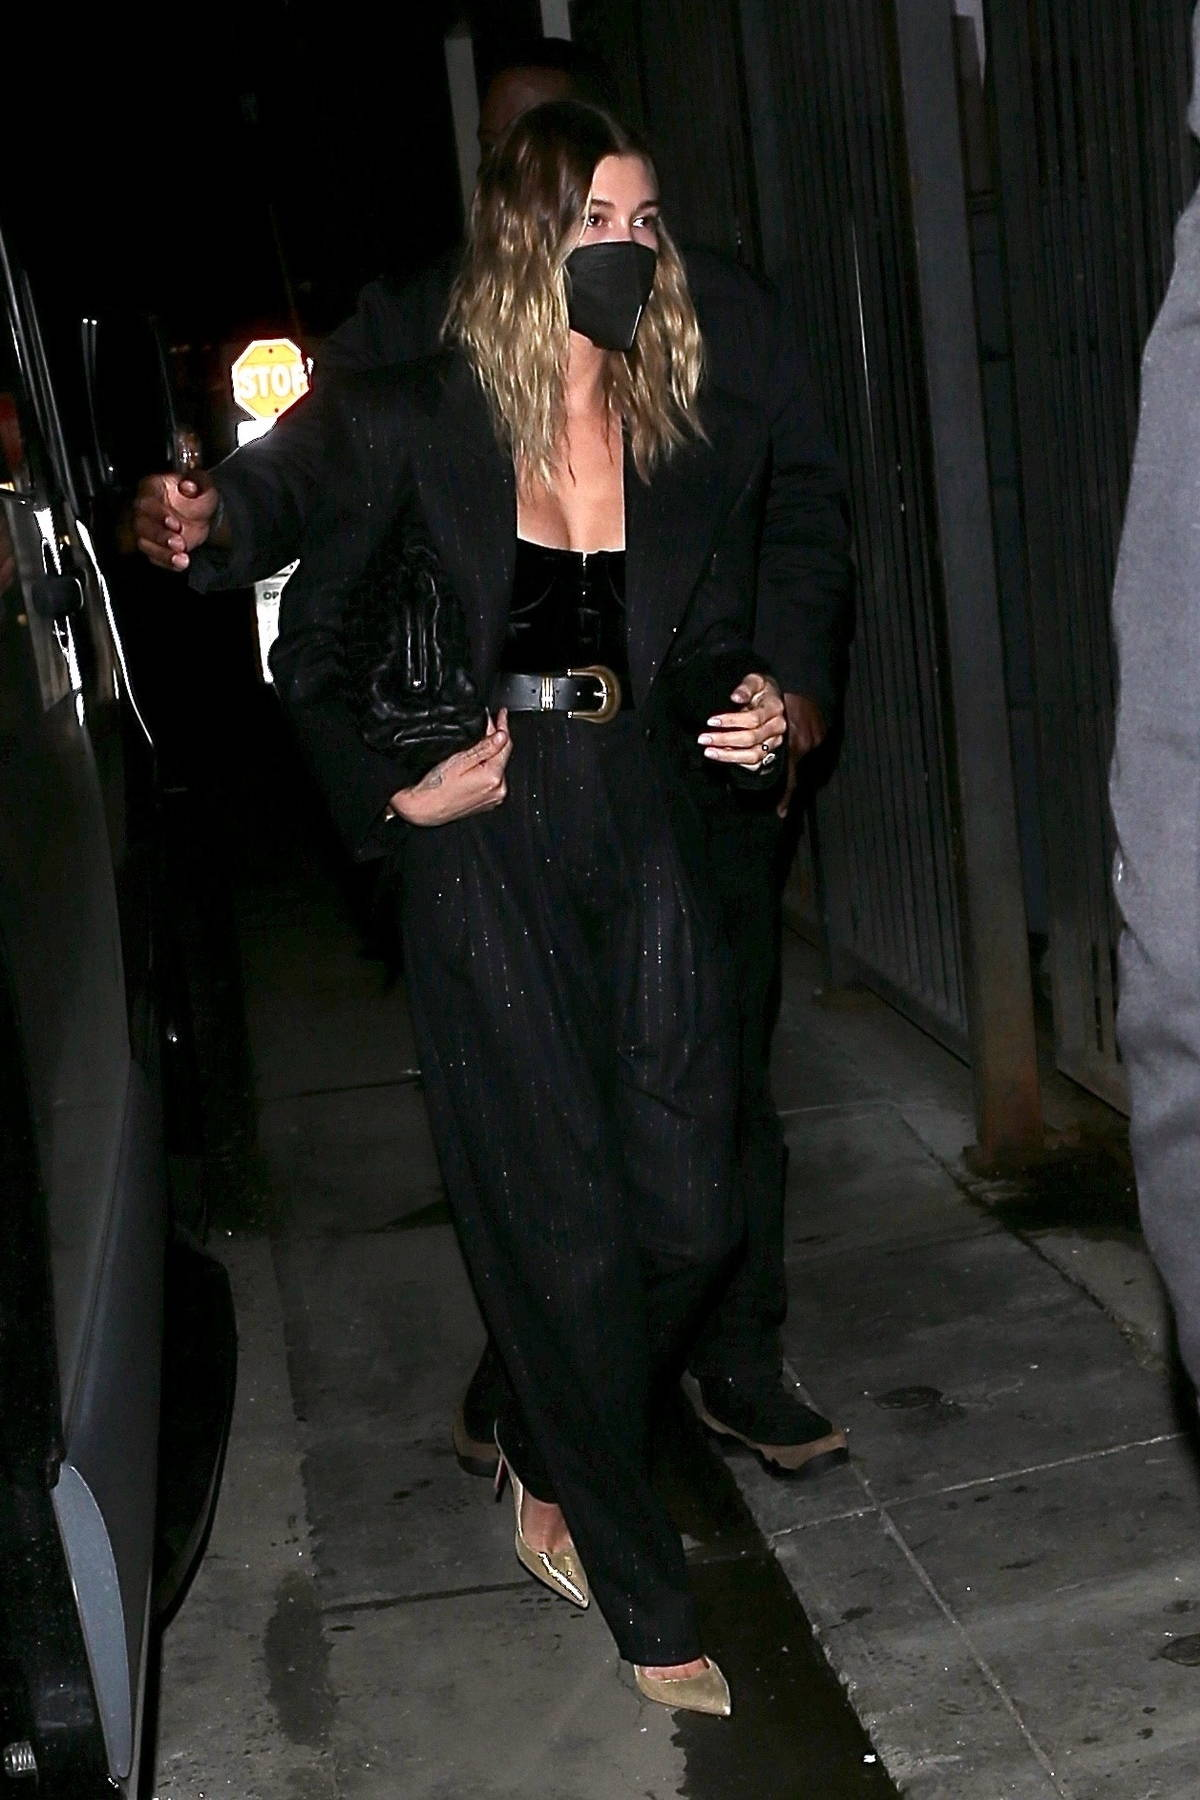 Hailey Bieber looks chic in black while stepping out for dinner at Catch in West Hollywood, California